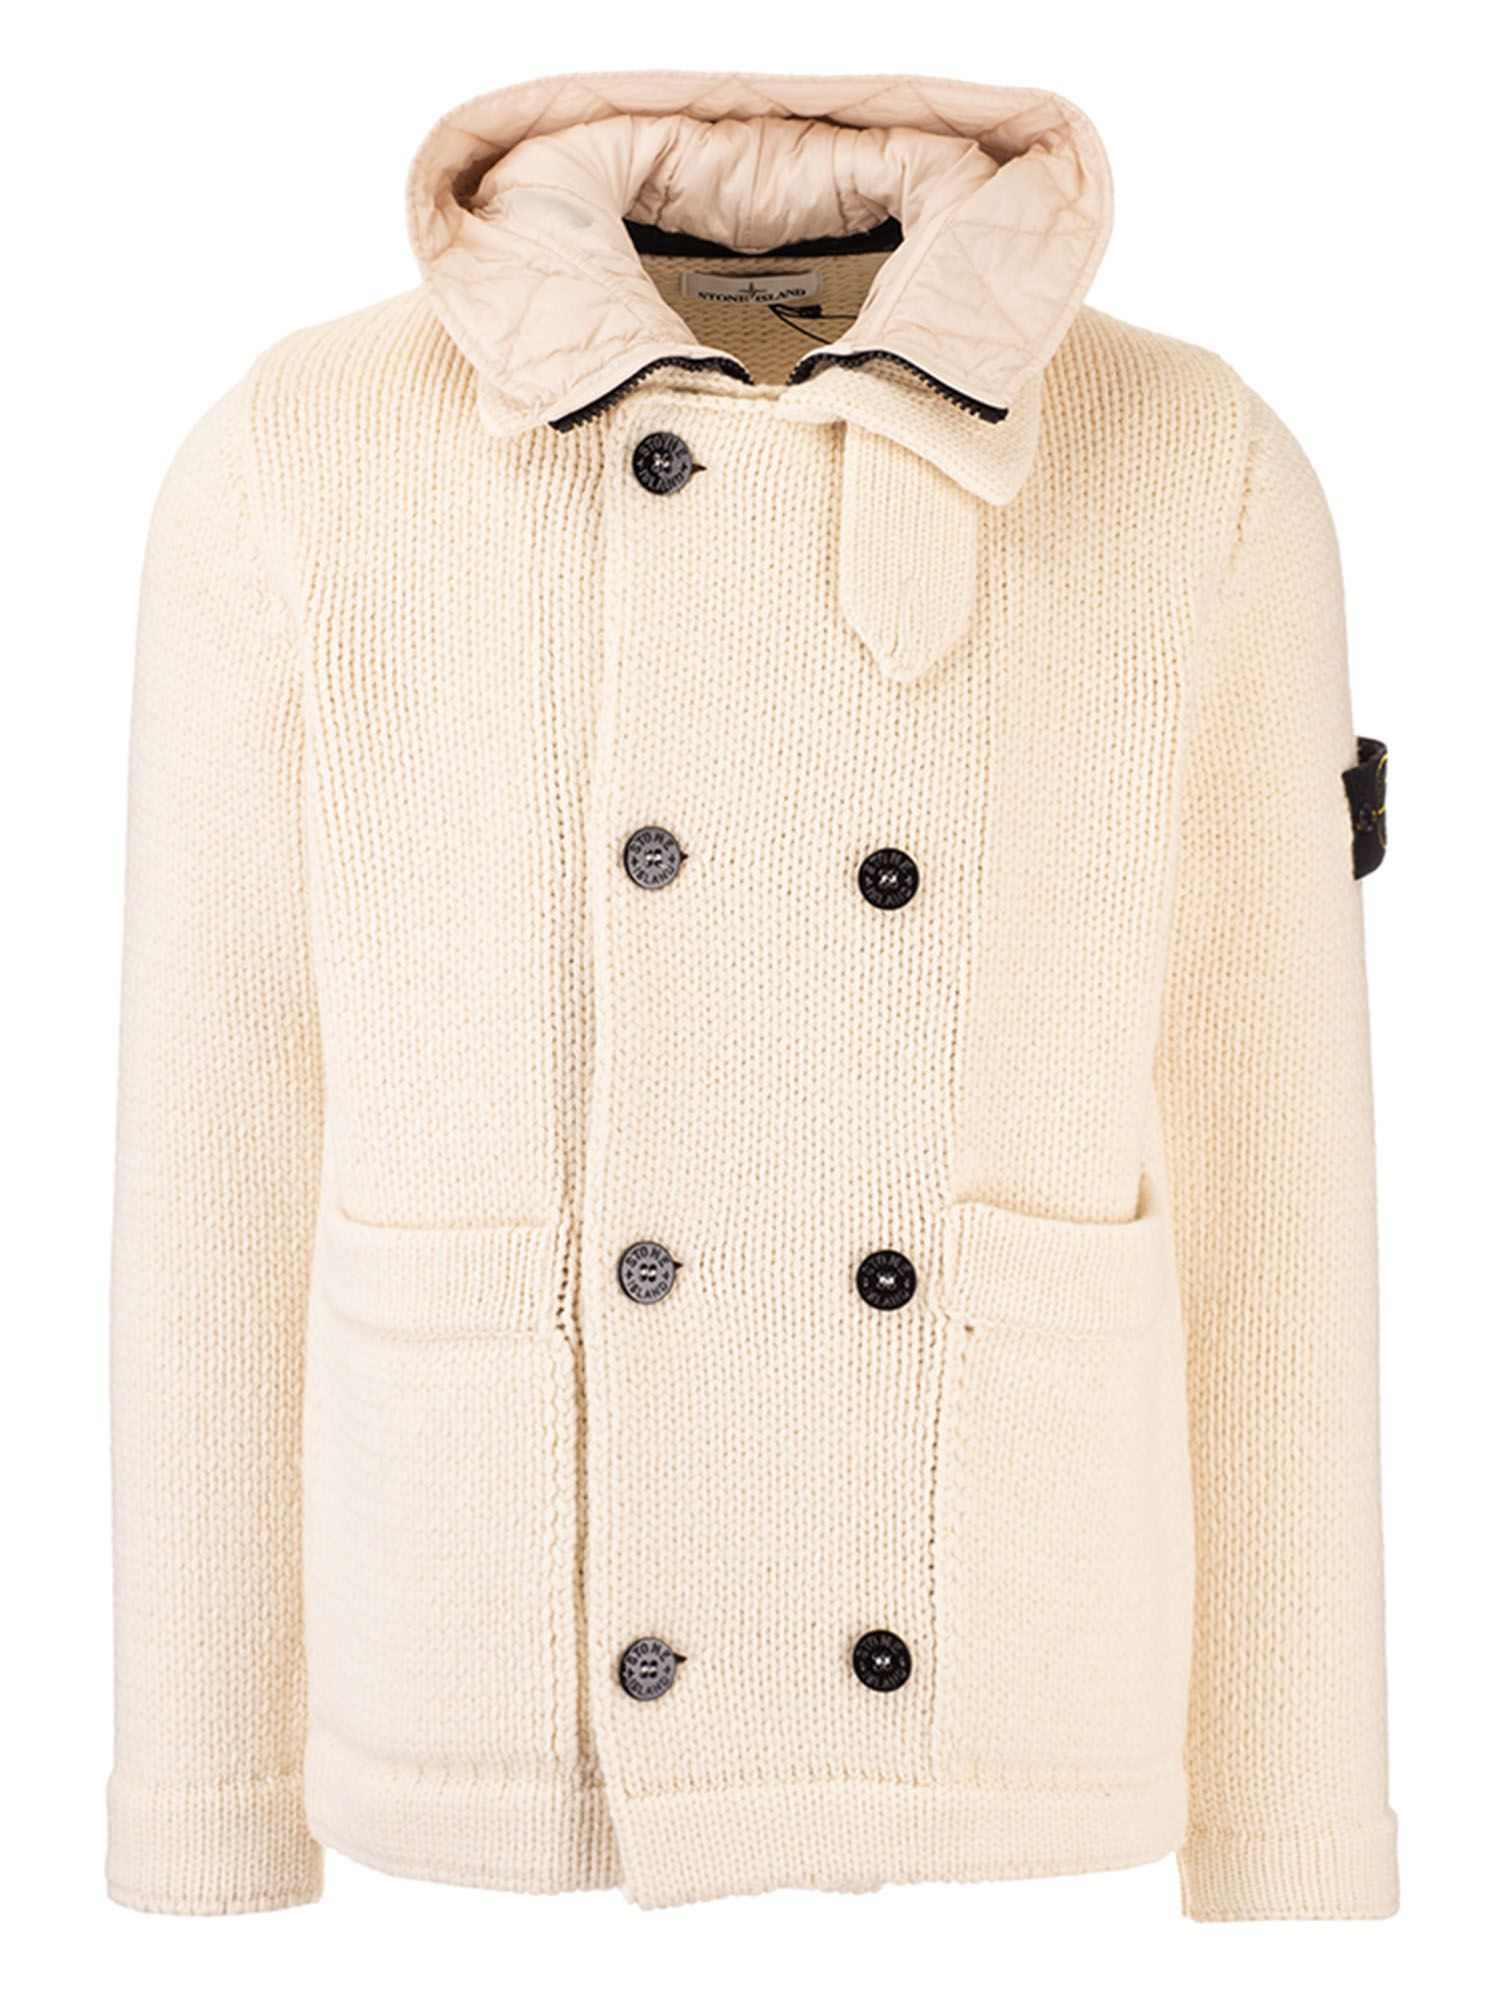 Stone Island DOUBLE-BREASTED CARDIGAN IN BUTTER COLOR